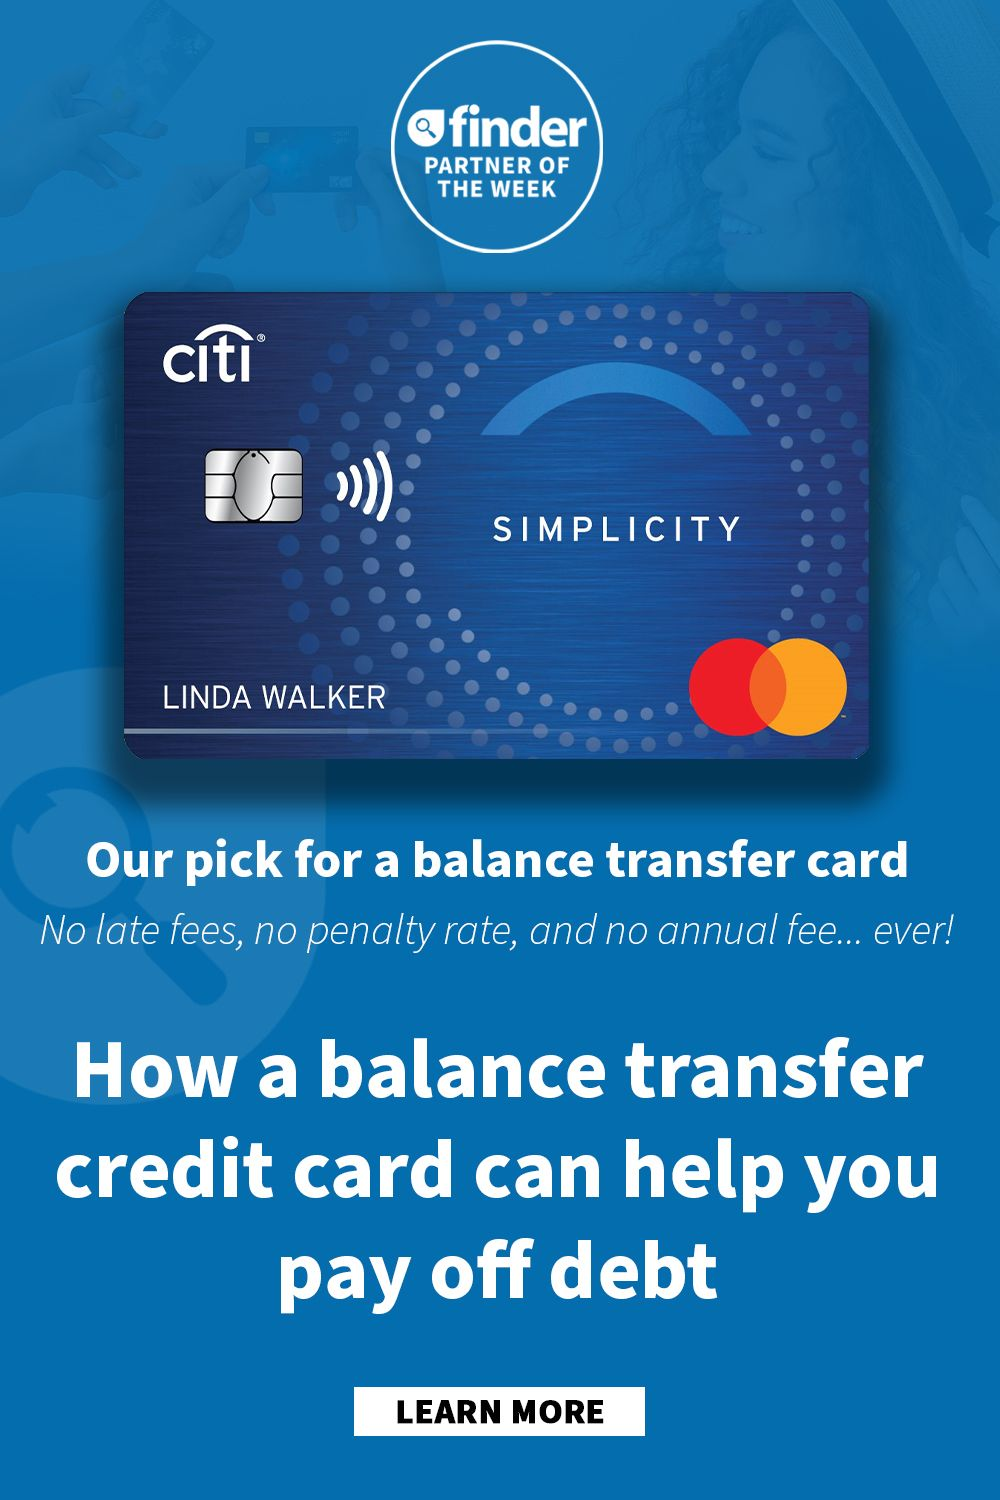 Credit Card Tips Need Help Paying Off Credit Card Debt A Balance Transfer Credit Ca In 2020 Credit Card Transfer Balance Transfer Cards Balance Transfer Credit Cards